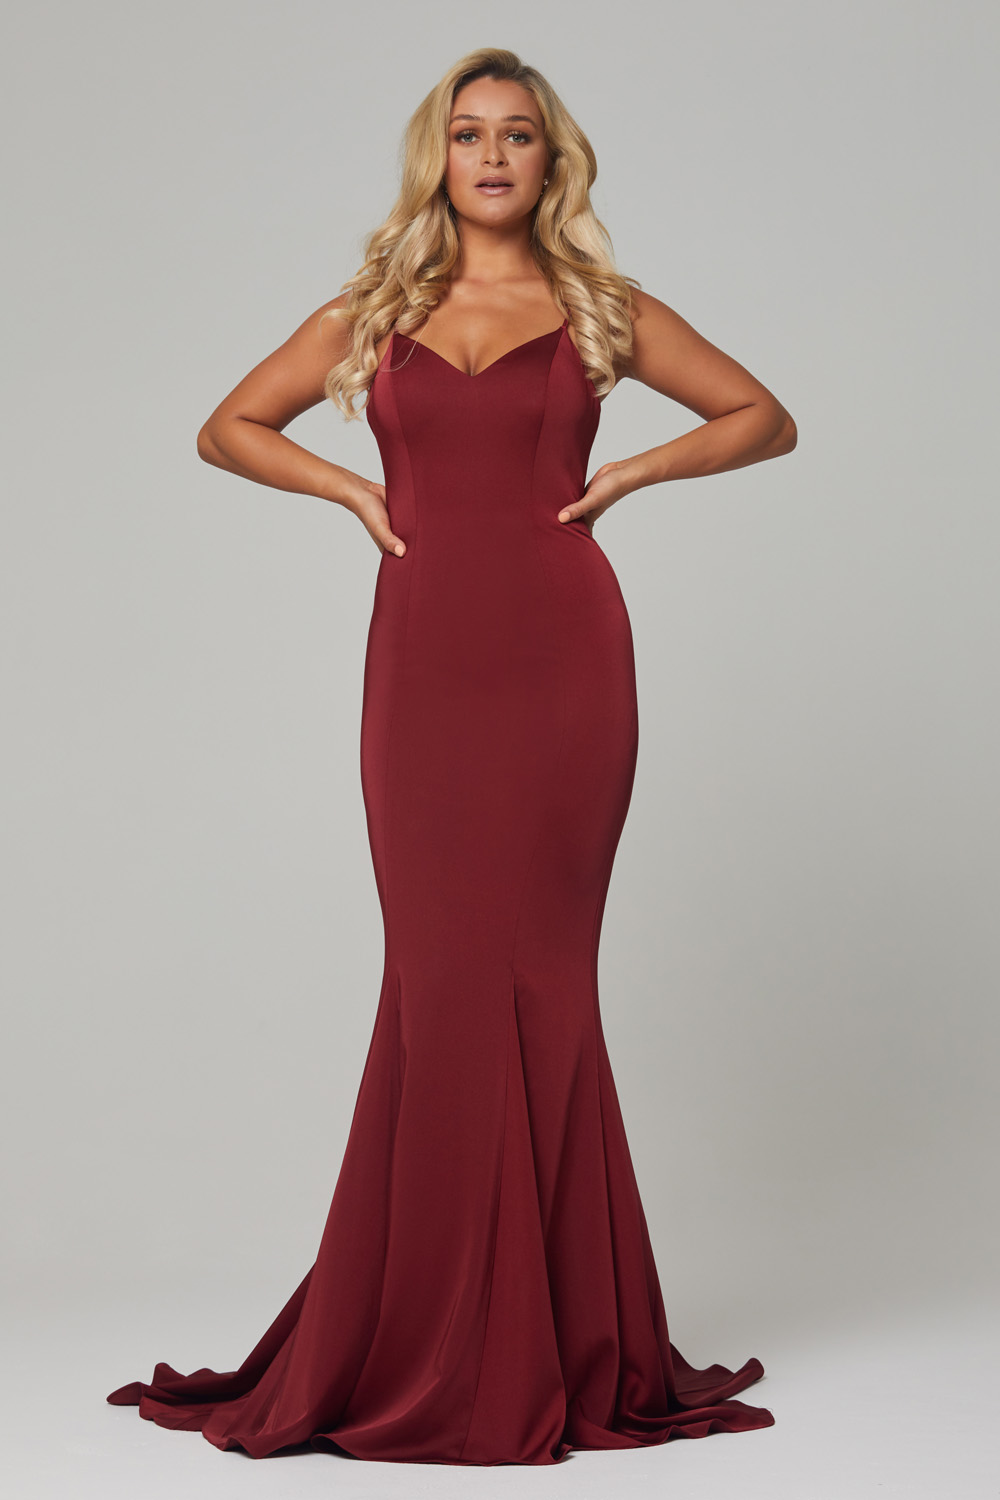 PO593-Wine-Bree dress